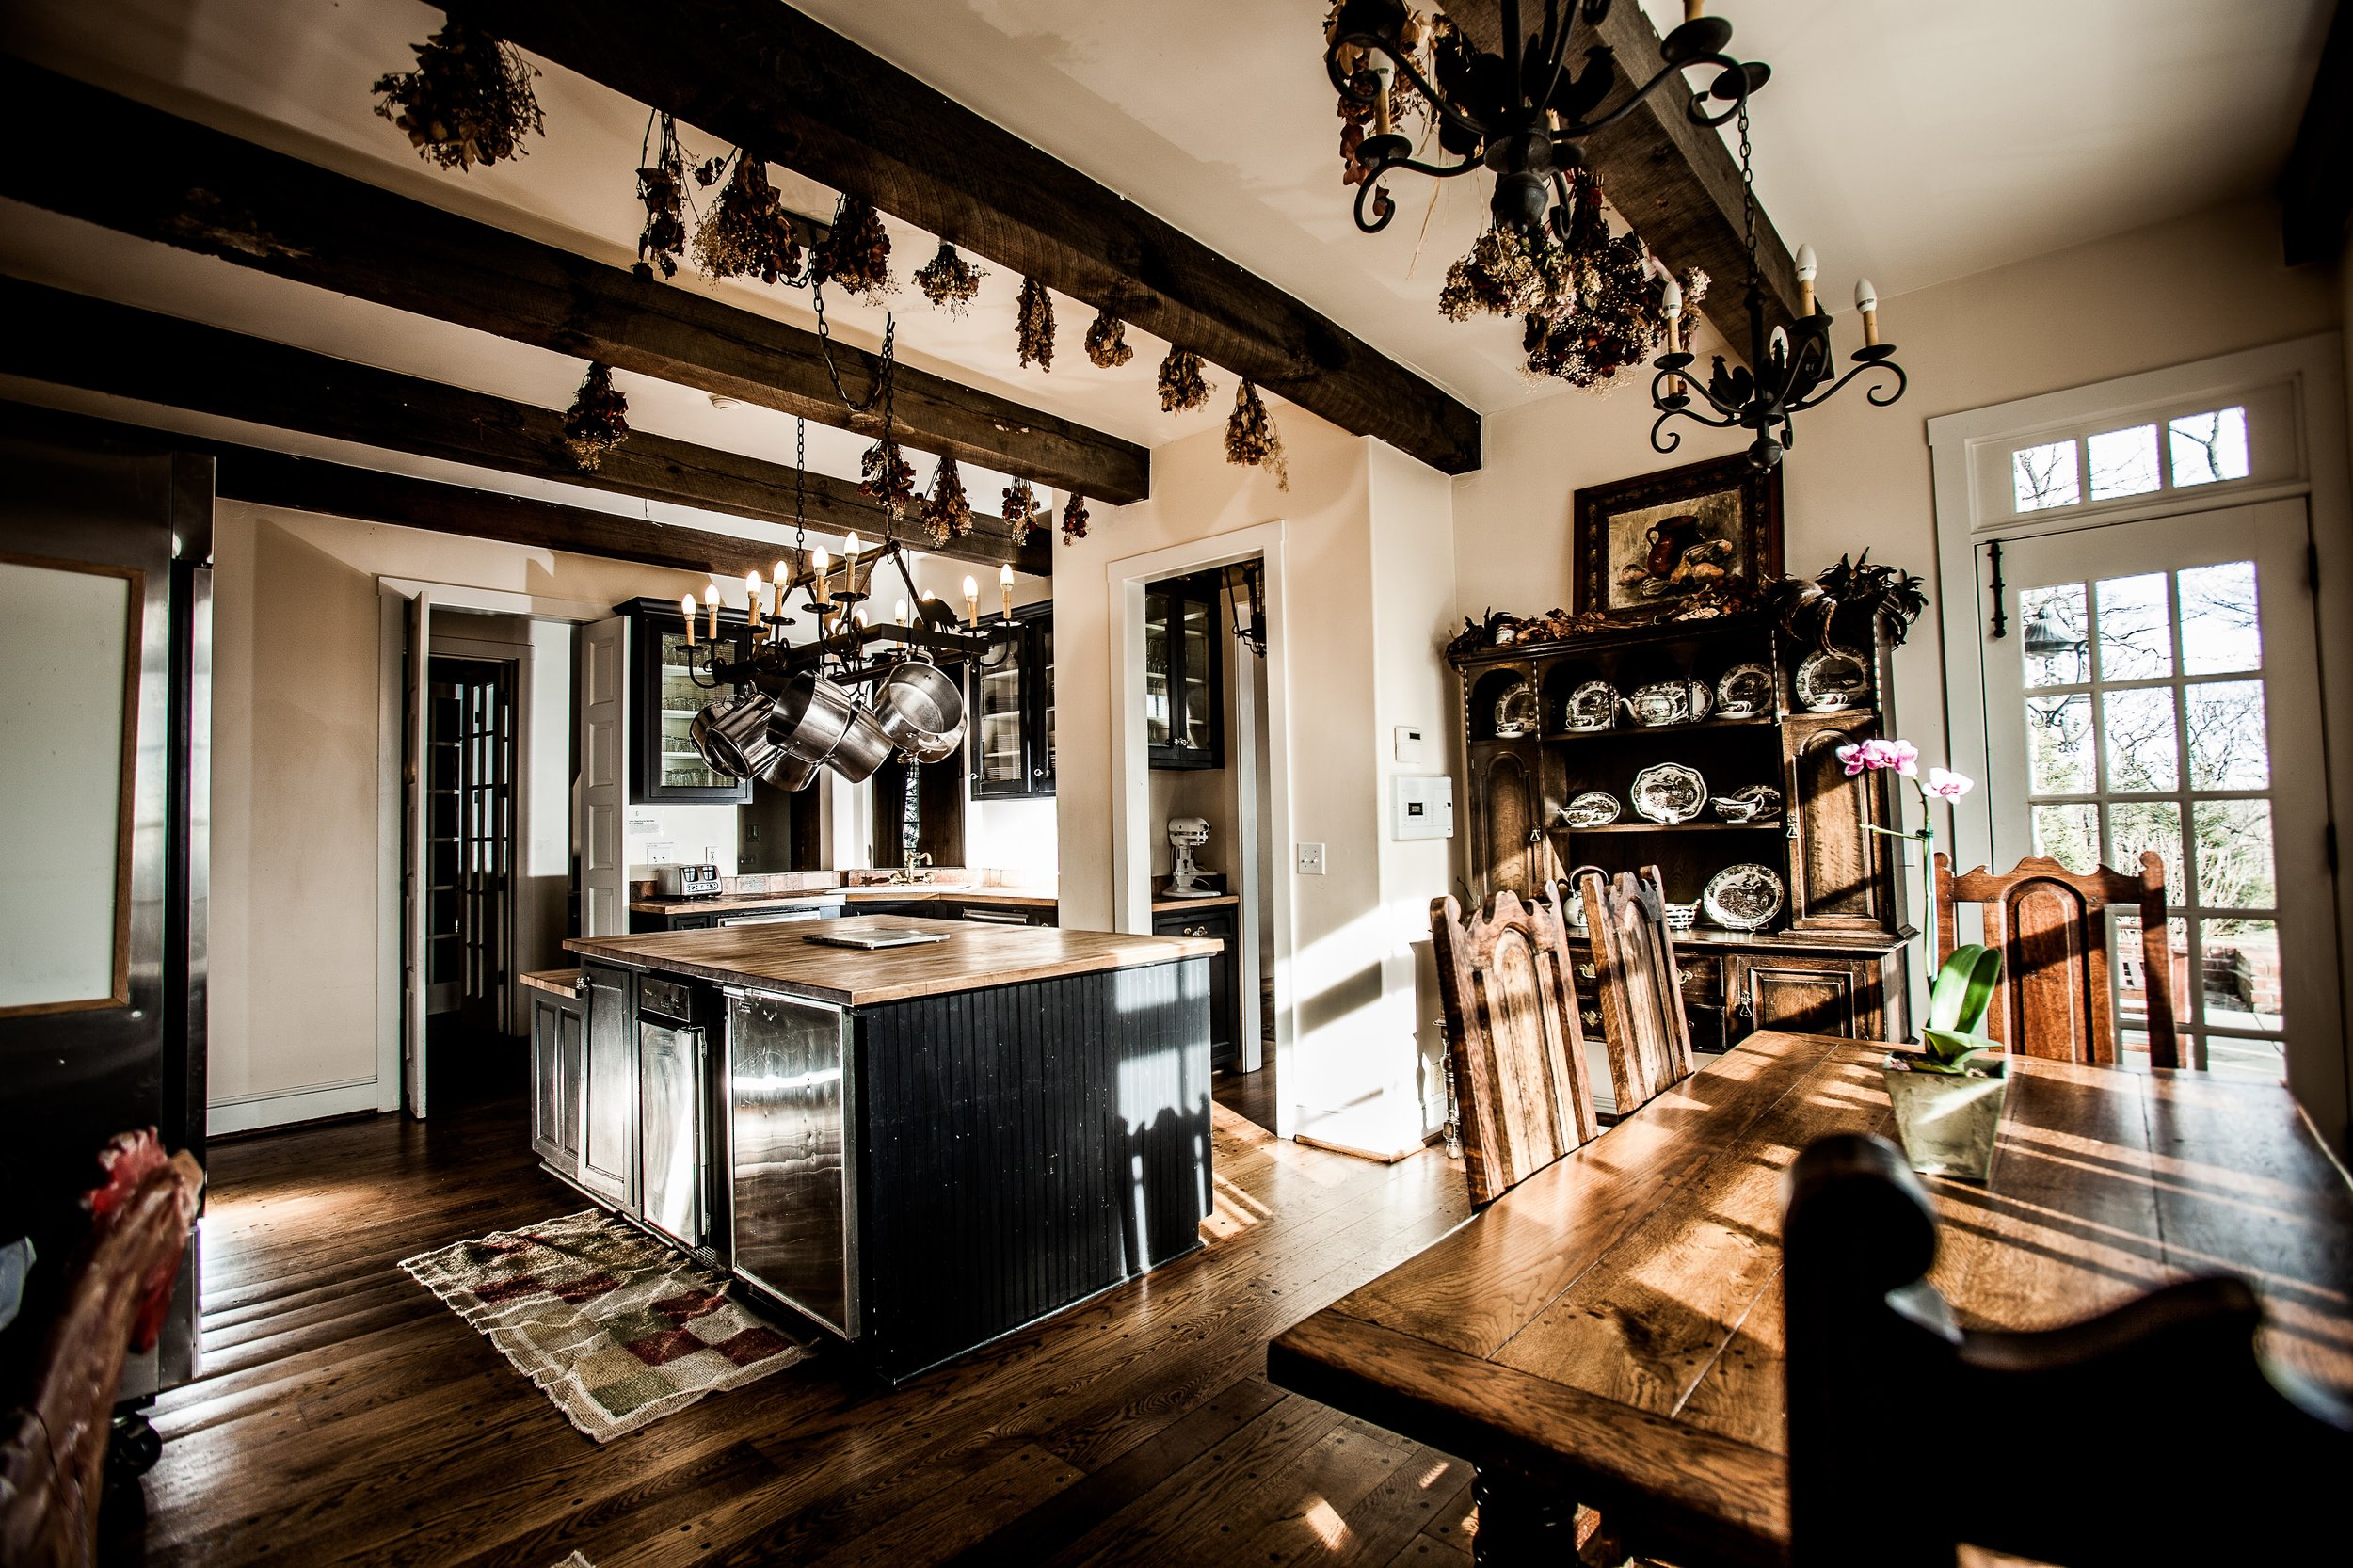 A large, sun soaked kitchen with an island and wooden breakfast table. Dried bouquets from brides hangs from the ceiling. The kitchen has an industrial fridge, stove, and other kitchen appliances.